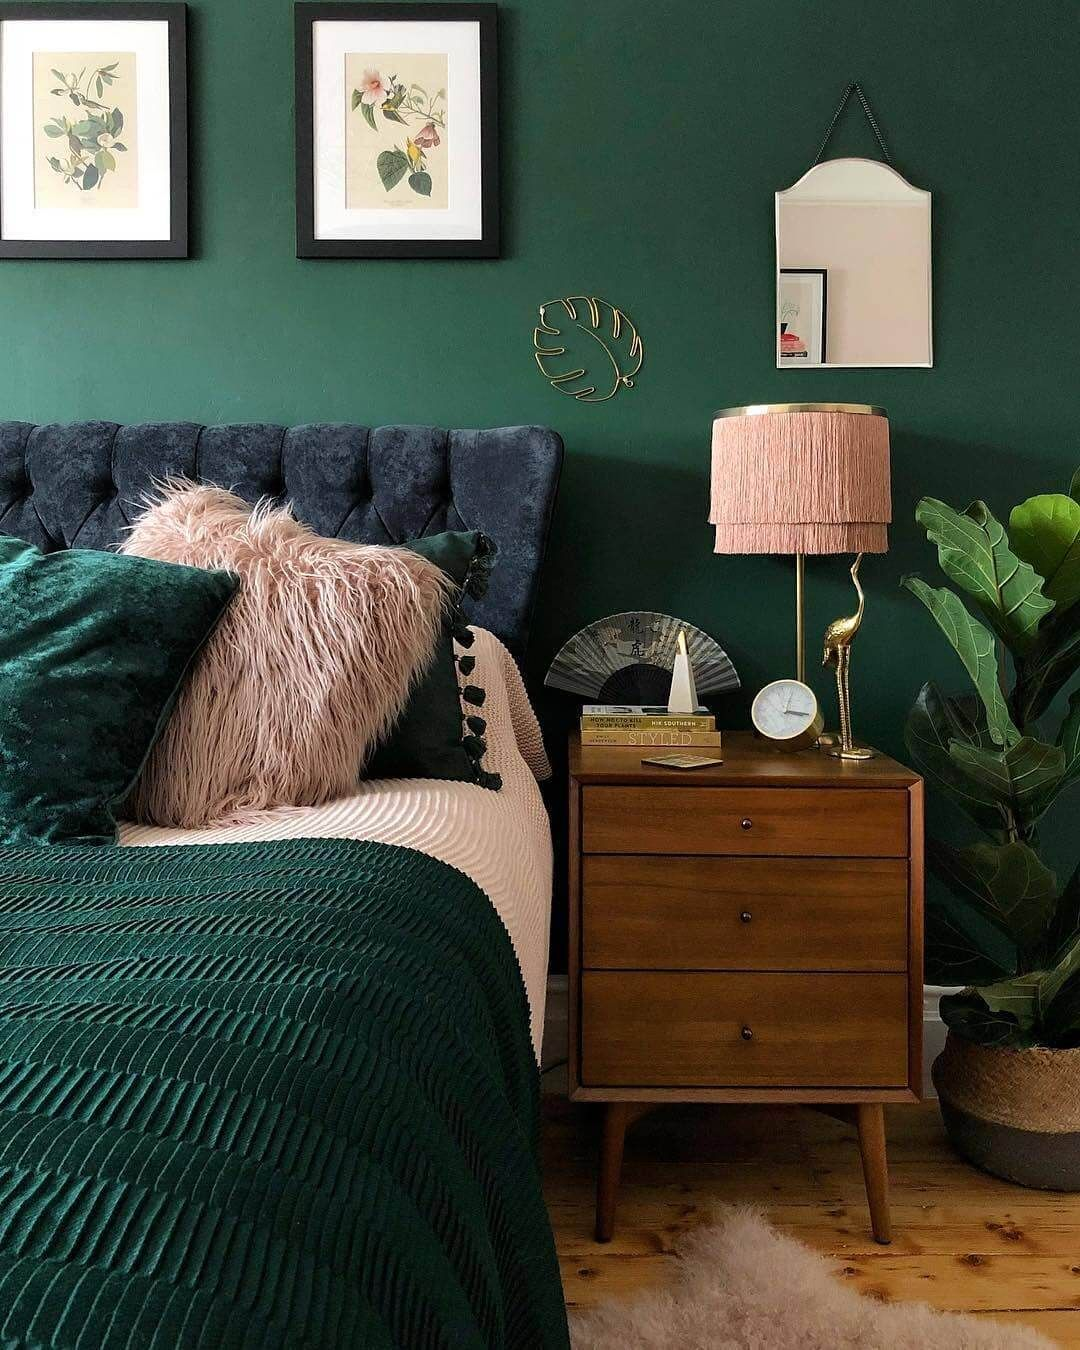 Find The Best Bedroom Color Ideas that You Can Use Right Away!